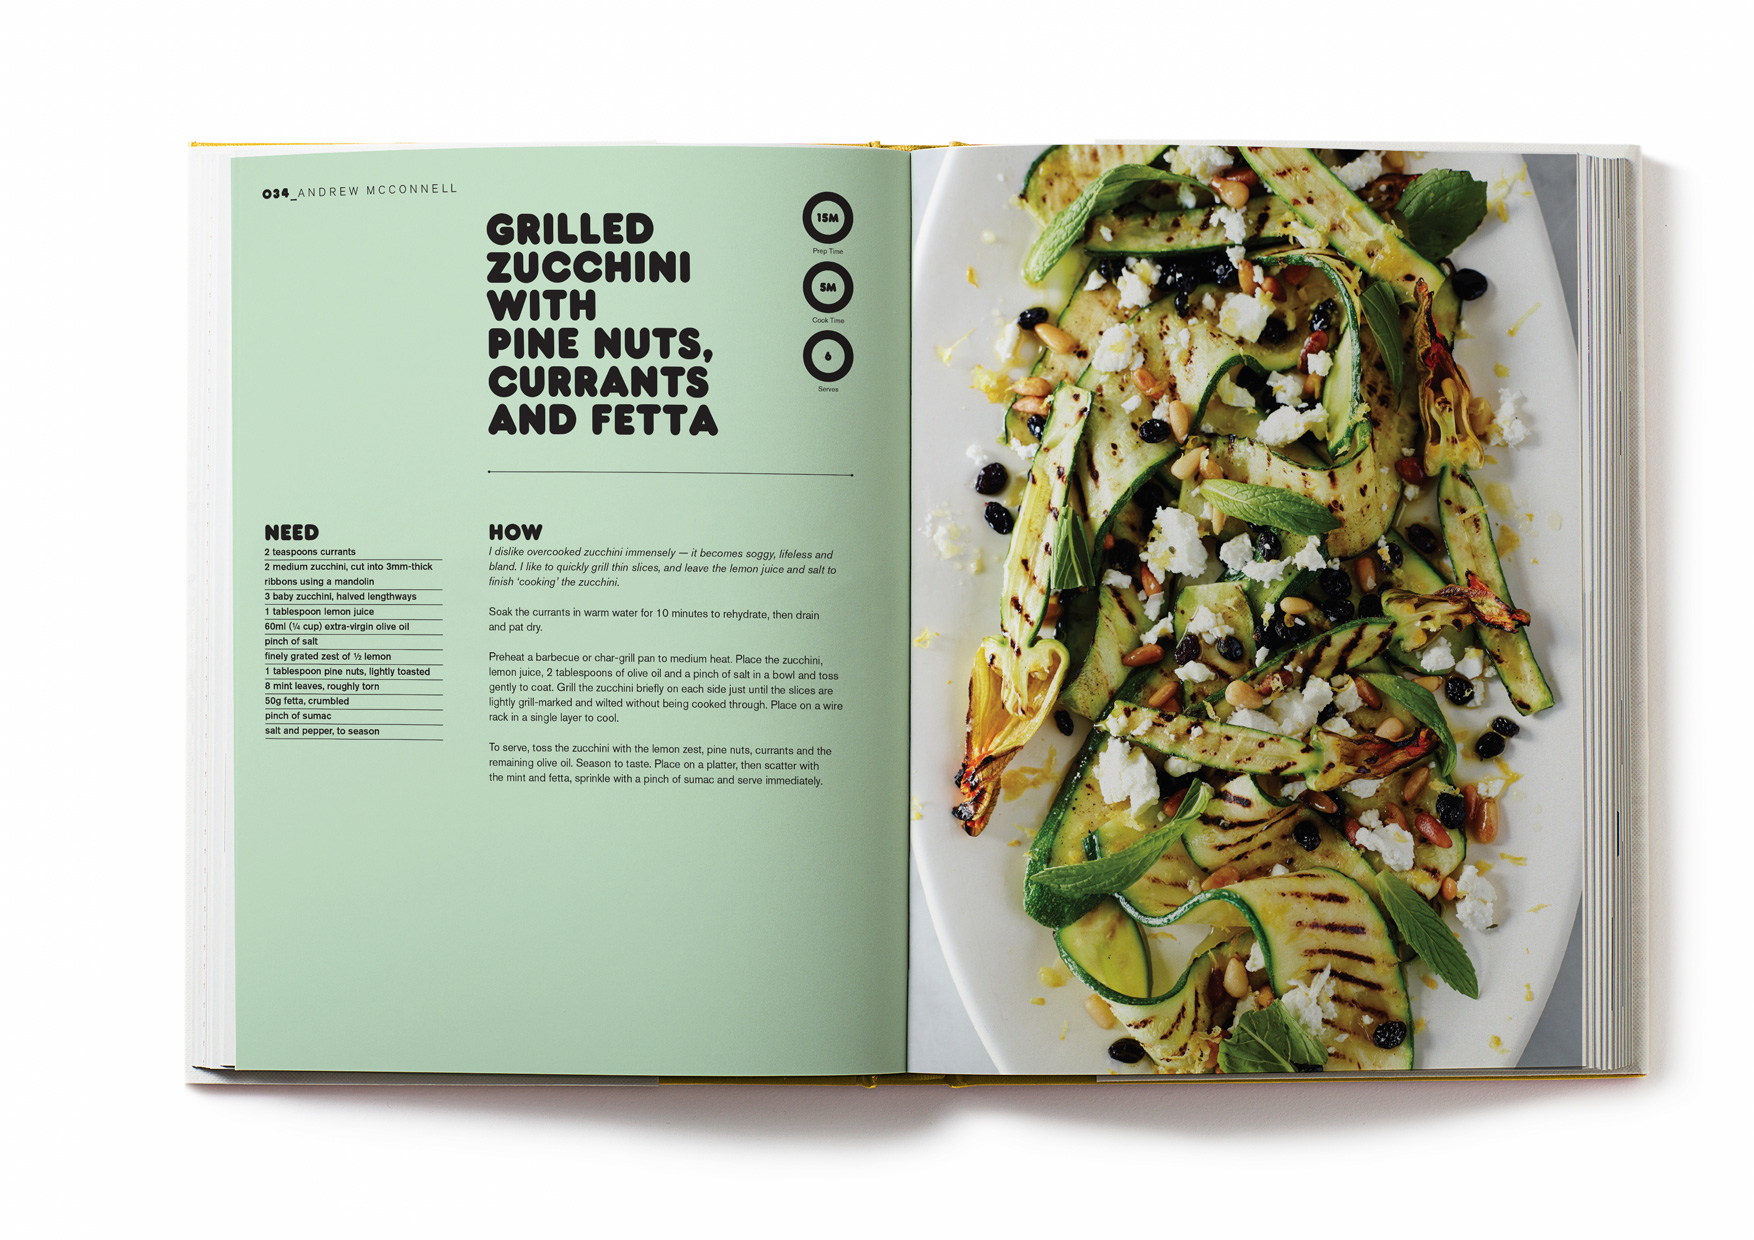 Design agency frostcollective produces cook book for ozharvest bt ozhcookbookfrost10 ozhcookbookfrost18 forumfinder Image collections